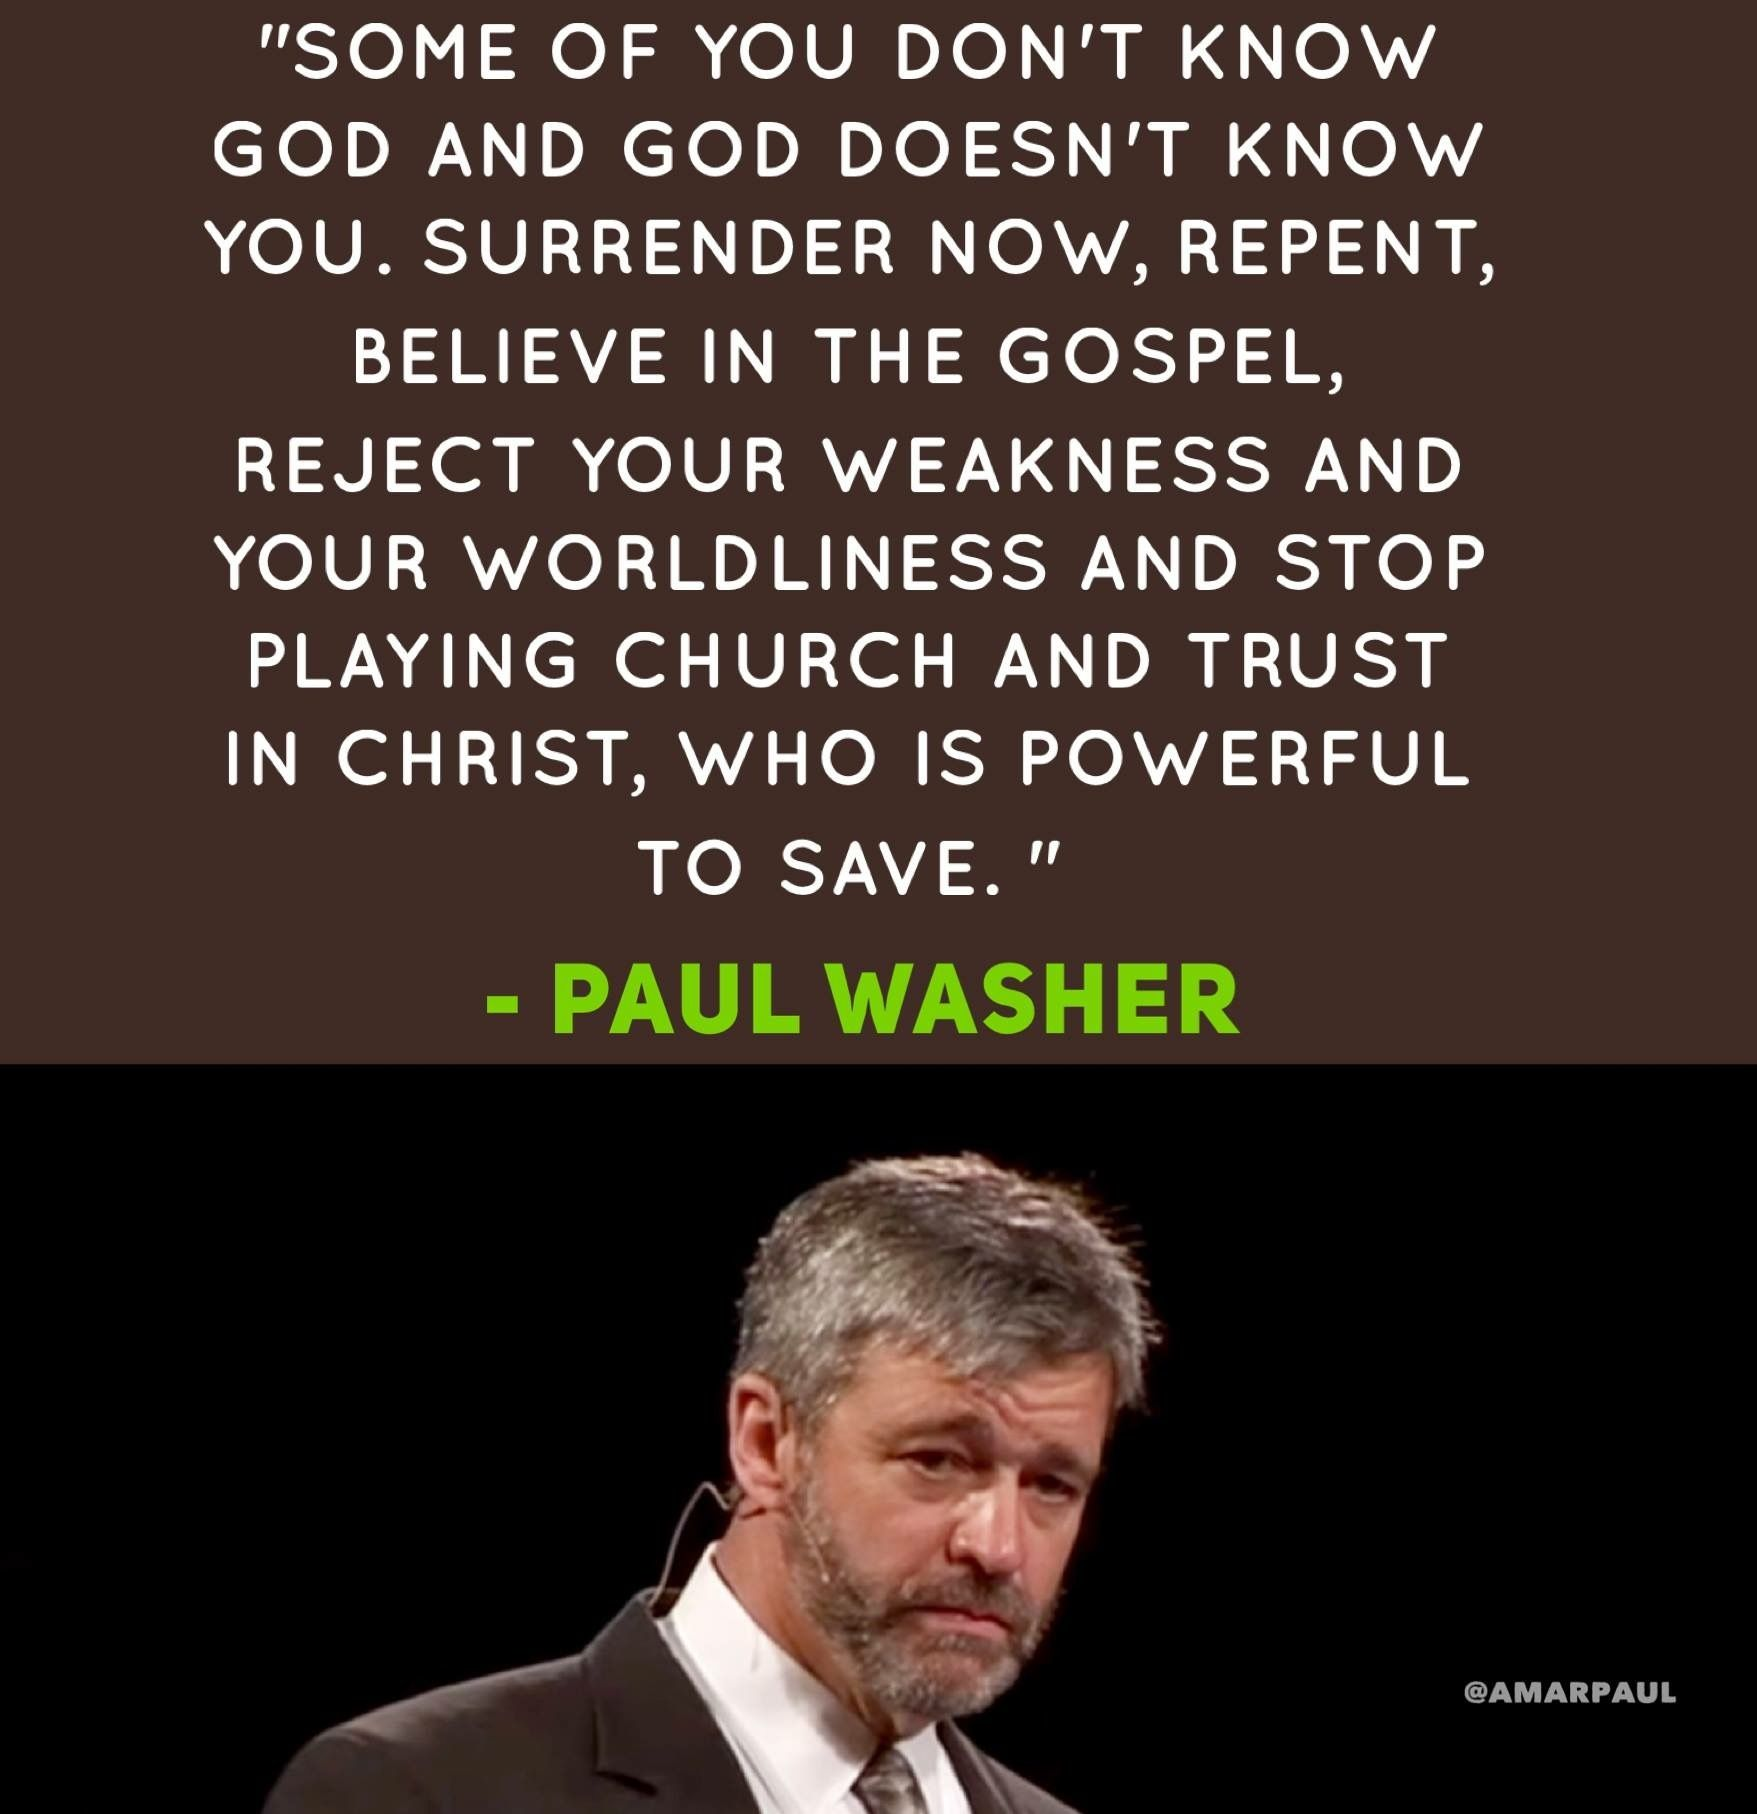 Pin by Cathie Cook on Paul Washer Paul washer quotes